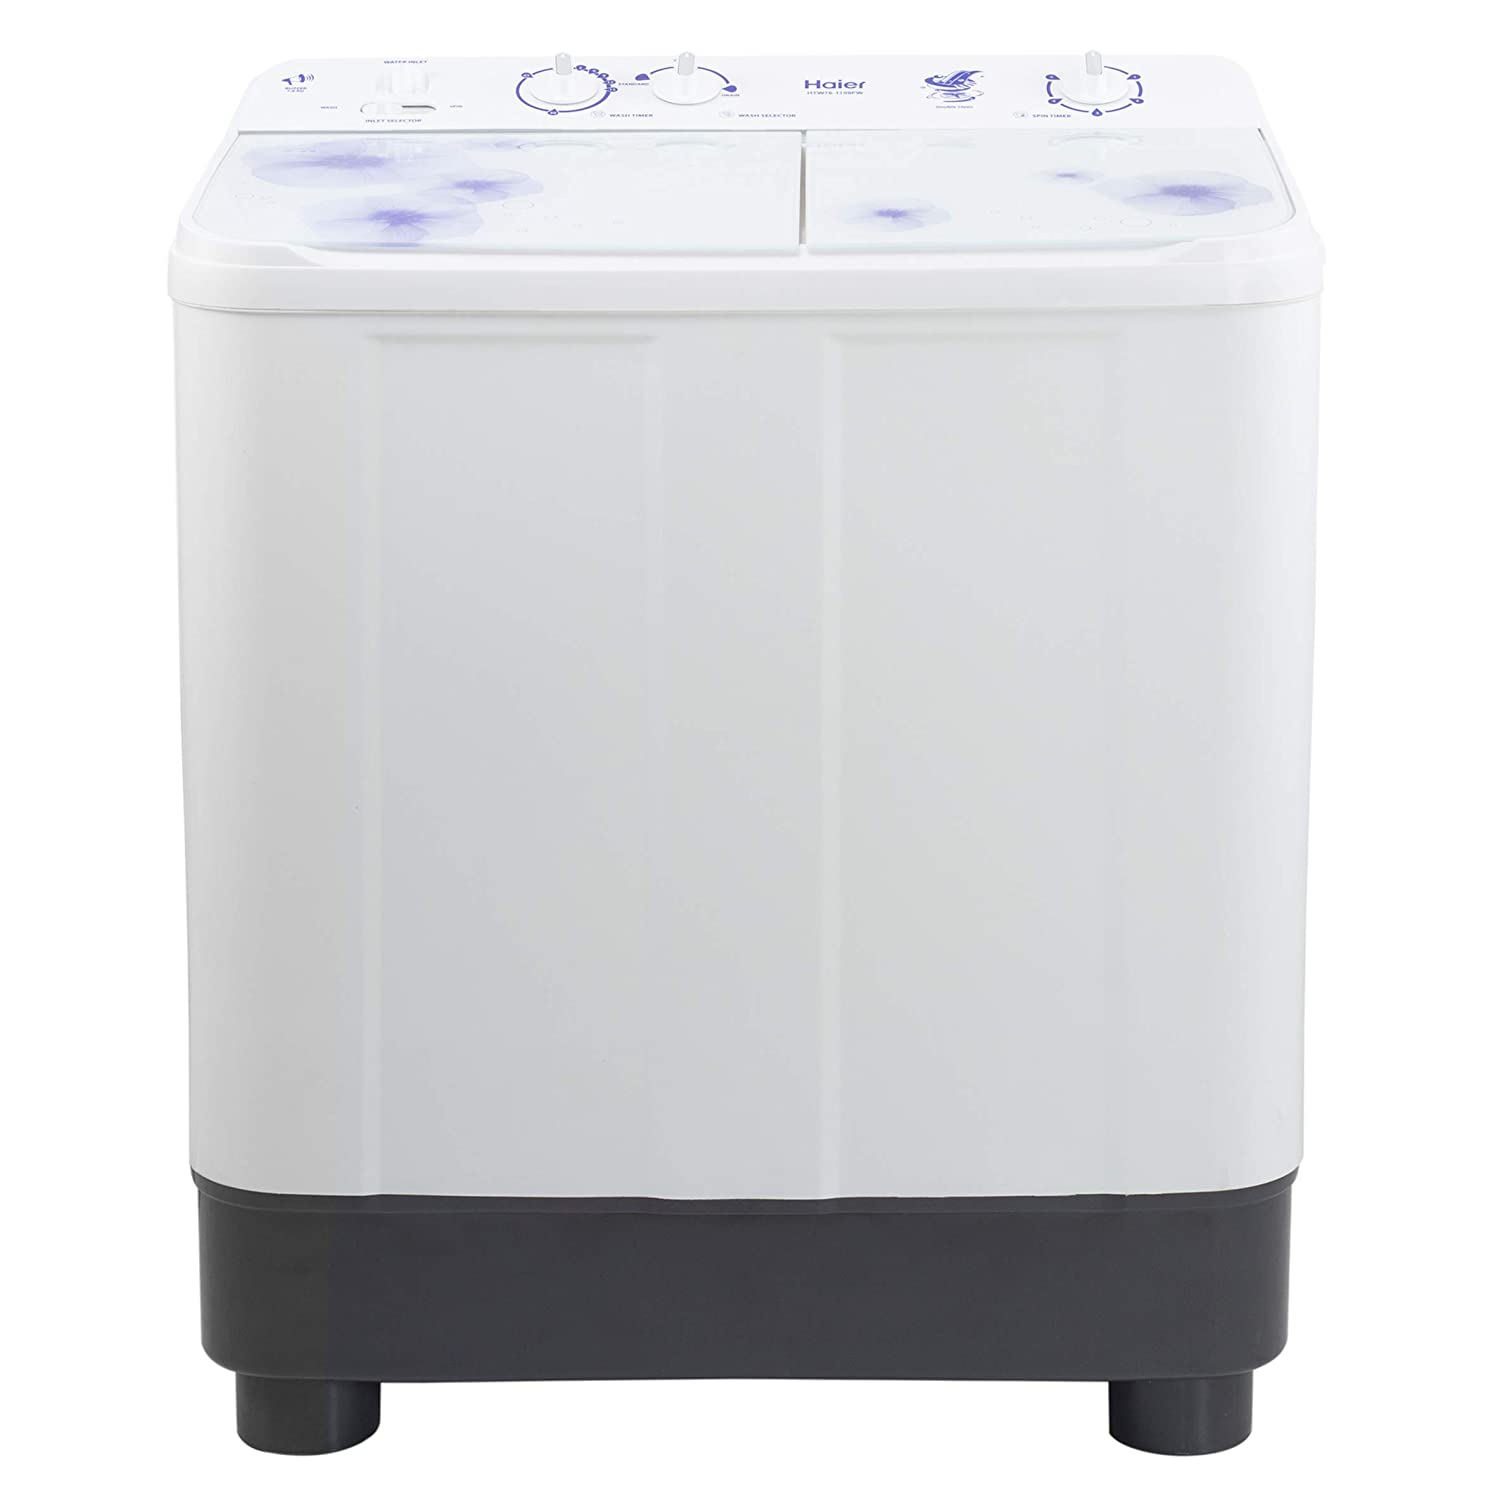 Haier 7.6 kg Semi-Automatic Top Loading Washing Machine (HTW76-1159FW, White Floral)